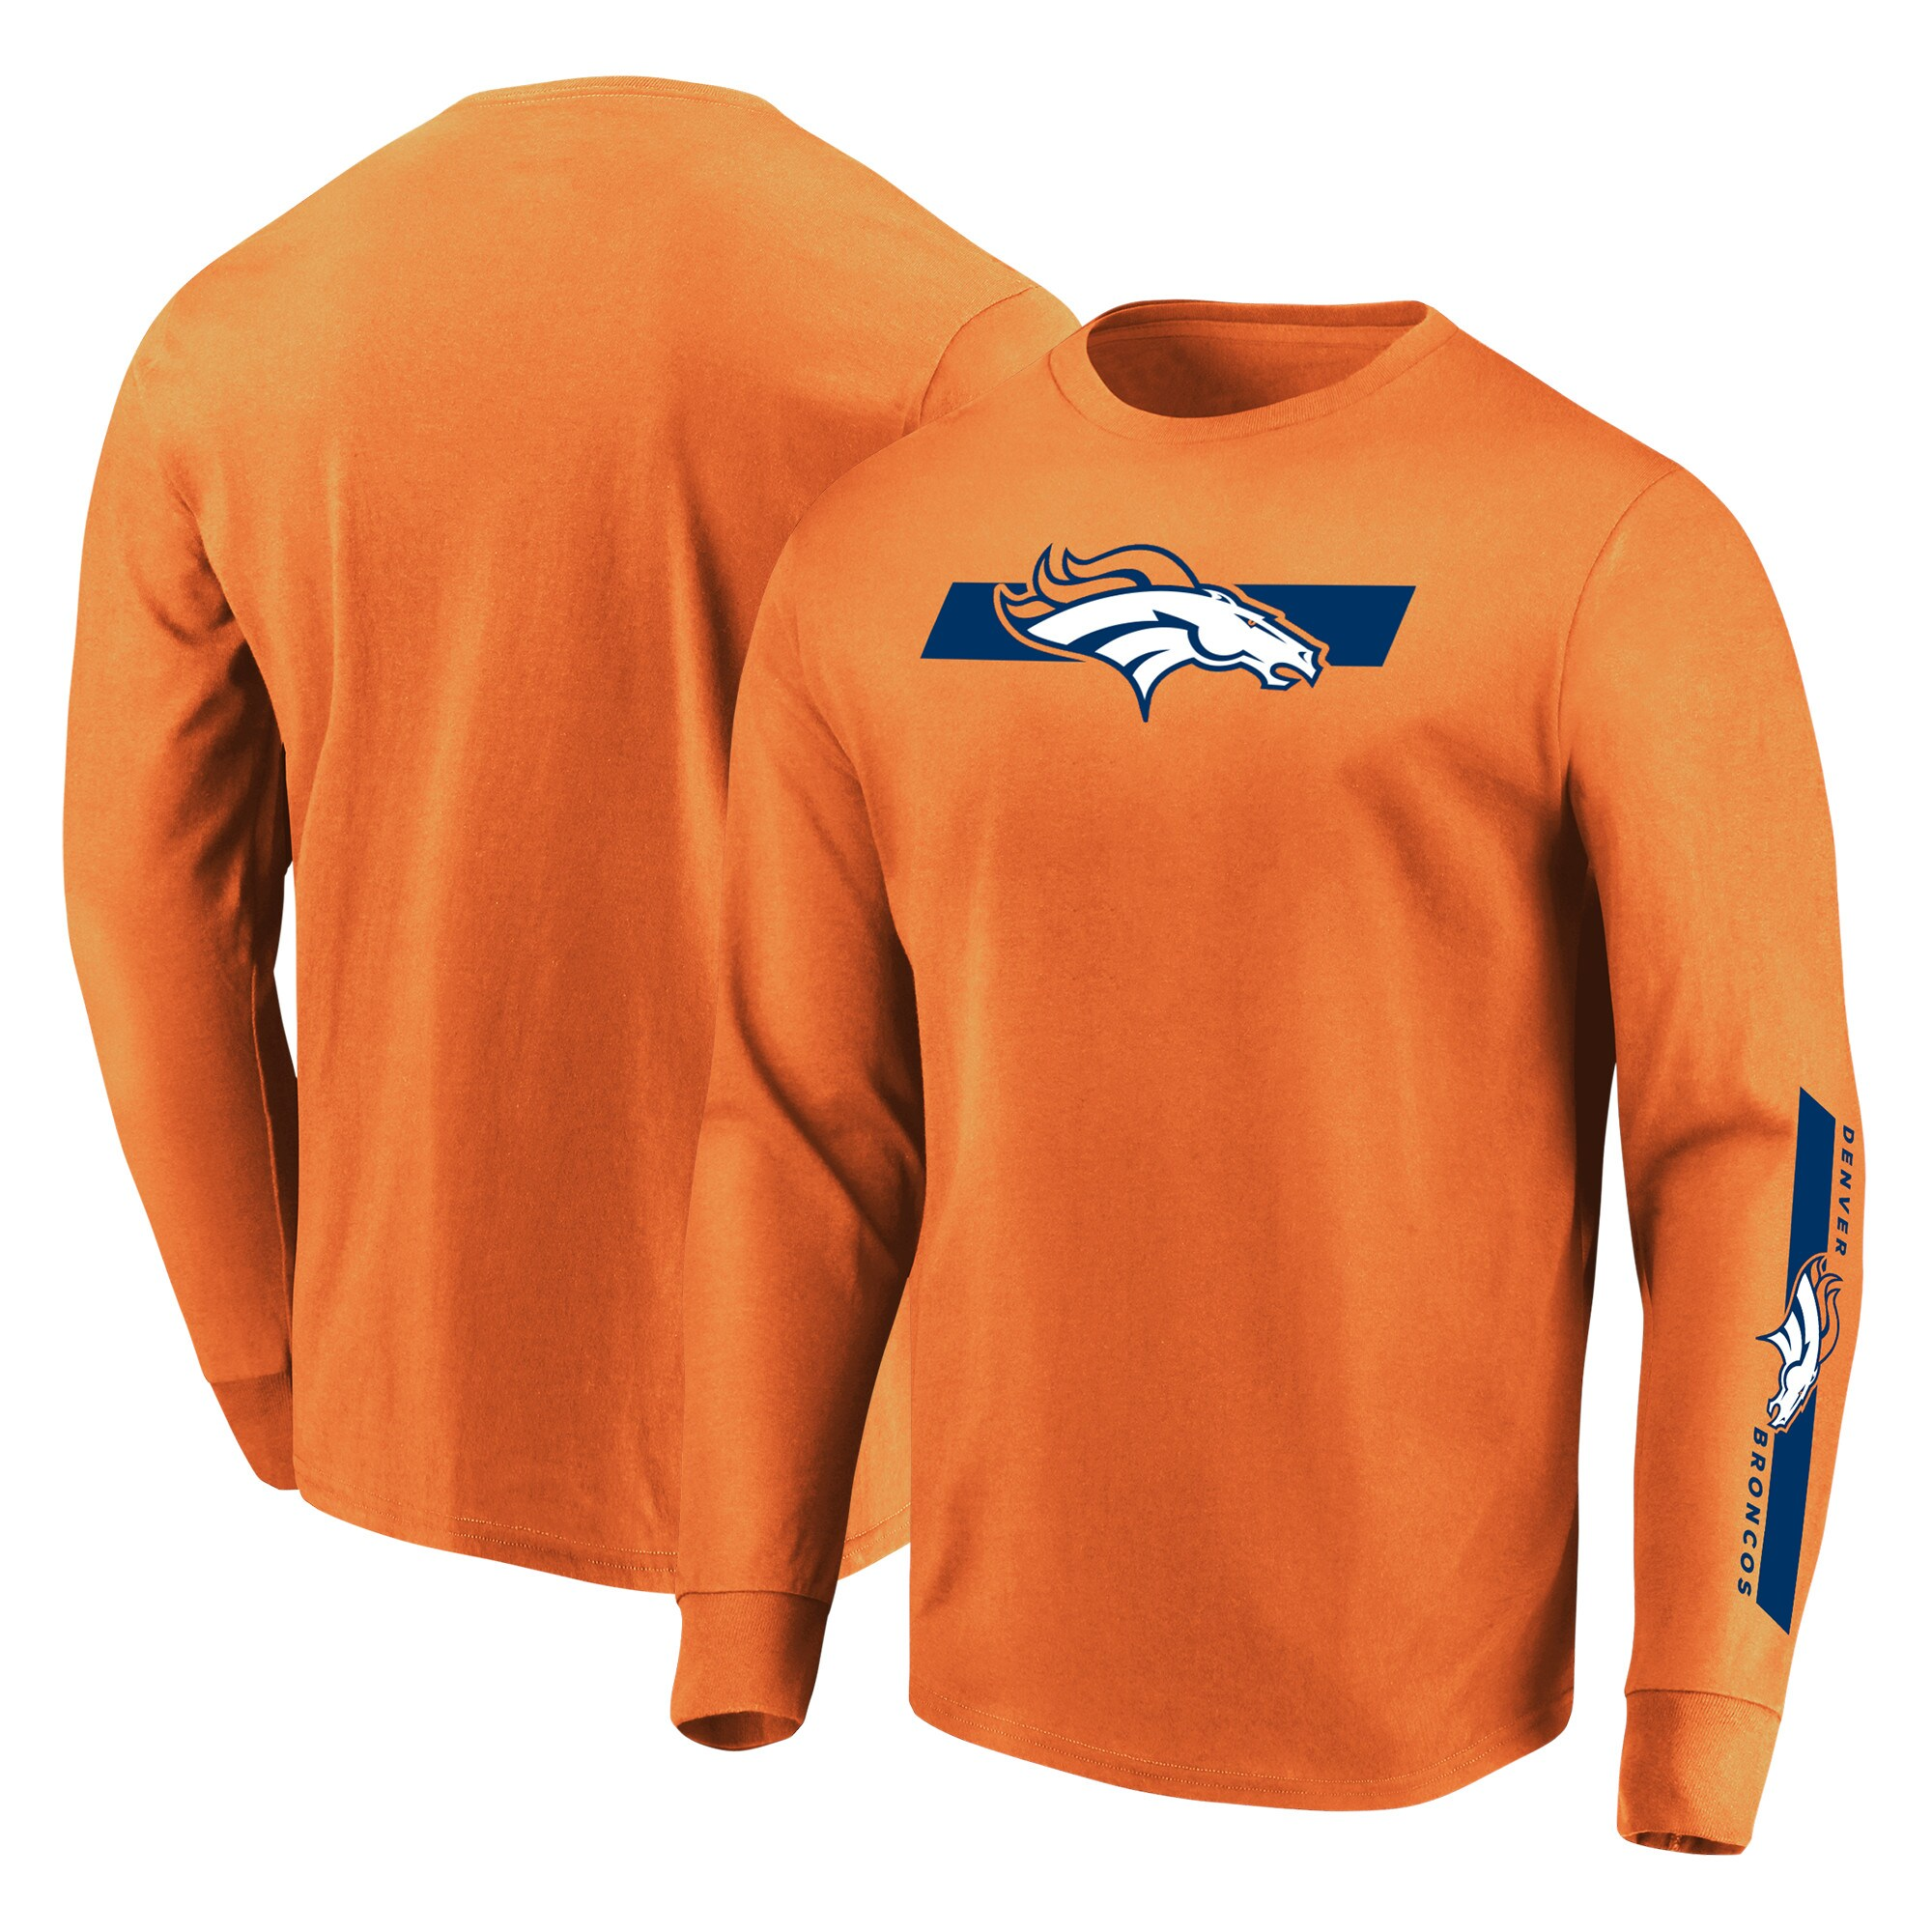 Denver Broncos Majestic Big & Tall Dual Threat Long Sleeve T-Shirt - Orange